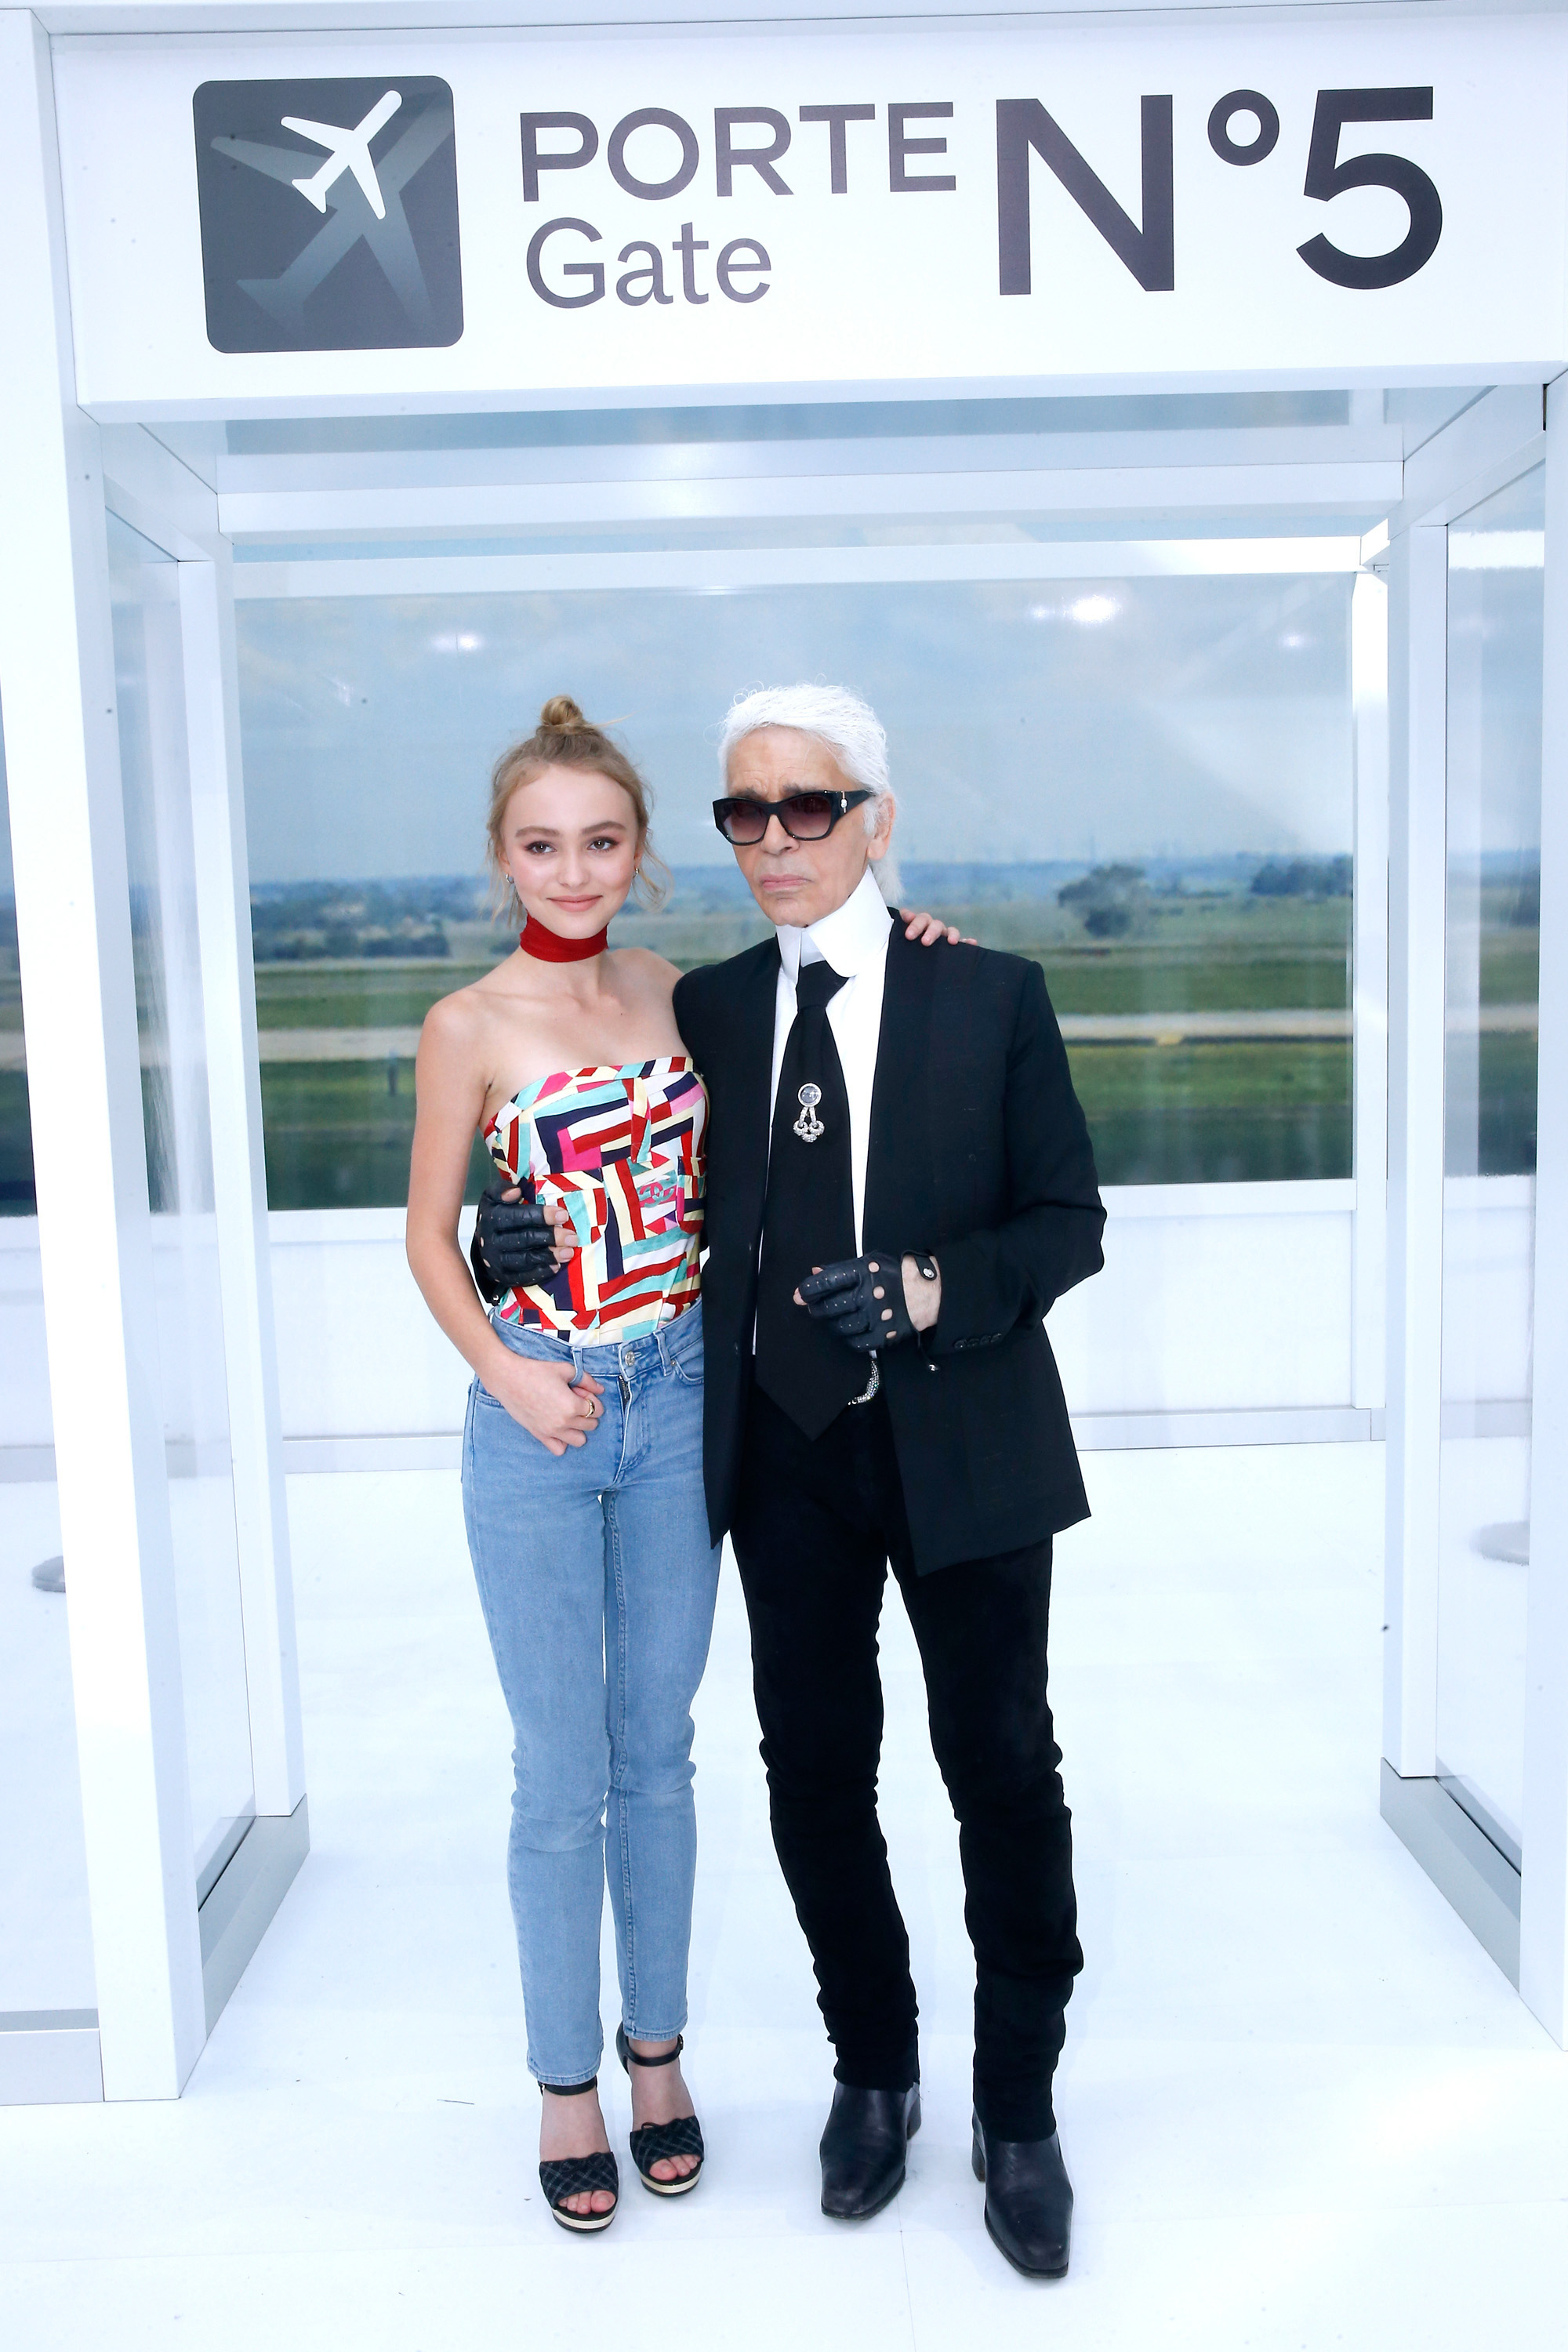 <p>To showcase Chanel's Spring/Summer 2016 collection, creative director Karl Lagerfeld sent fashion soaring, turning Paris' Grand Palais into an airport terminal complete with baggage check, numbered gates, baggage carts and a departures and arrival board.</p><p>Those checking into the front row included Chanel muses Lily-Rose Depp, Vanessa Paradis, Cara Delevingne, Courtney Eaton and more. Click ahead to see airport style at its finest.  </p>